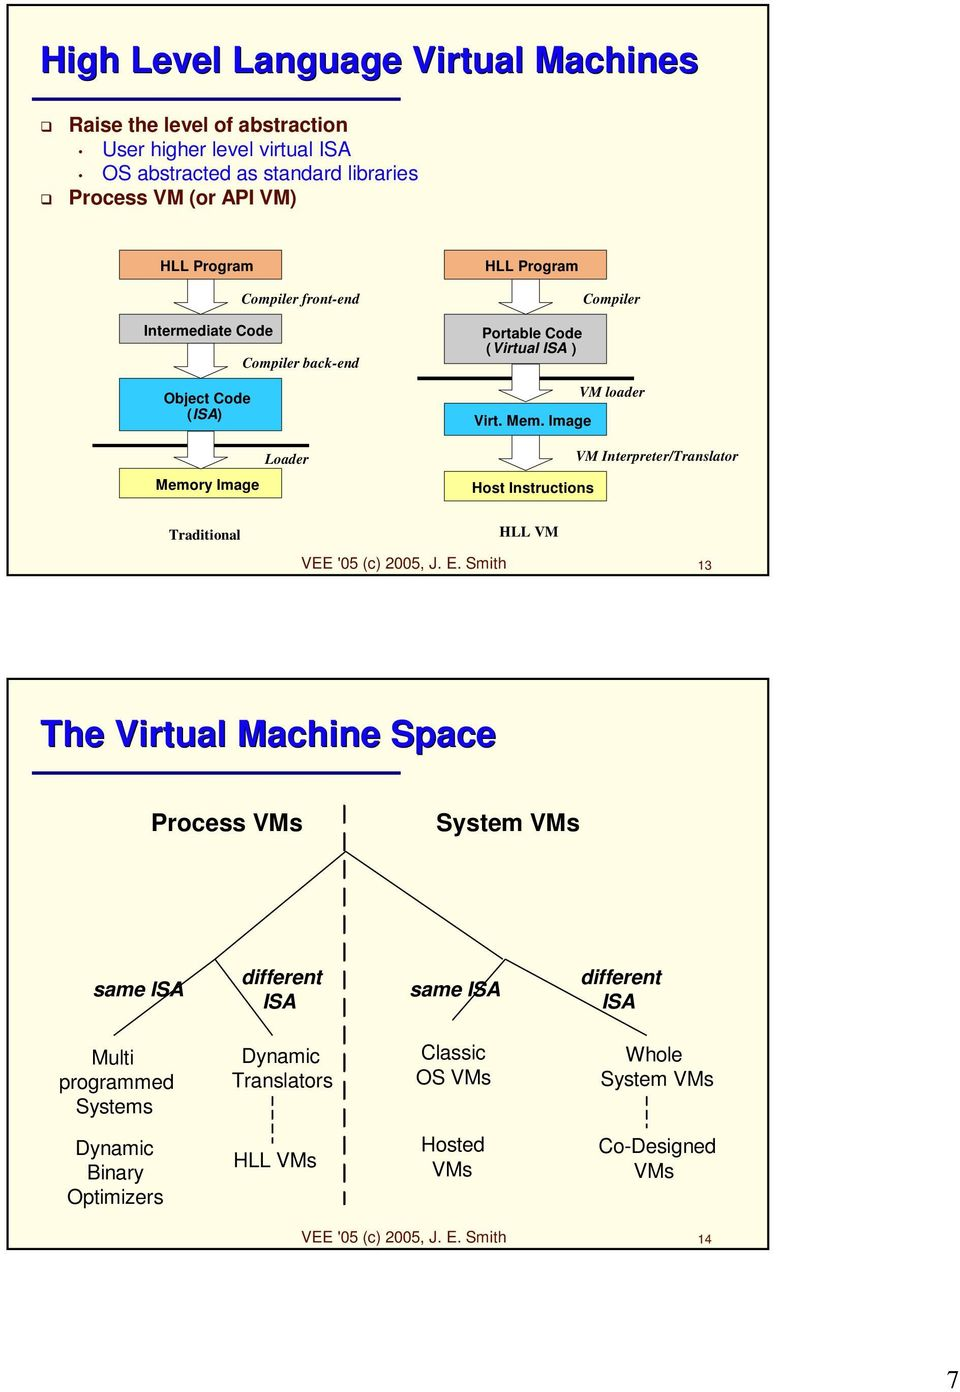 E. Smith 13 The Virtual Machine Space Process VMs System VMs same ISA different ISA same ISA different ISA Multi programmed Systems Dynamic Translators Classic OS VMs Whole